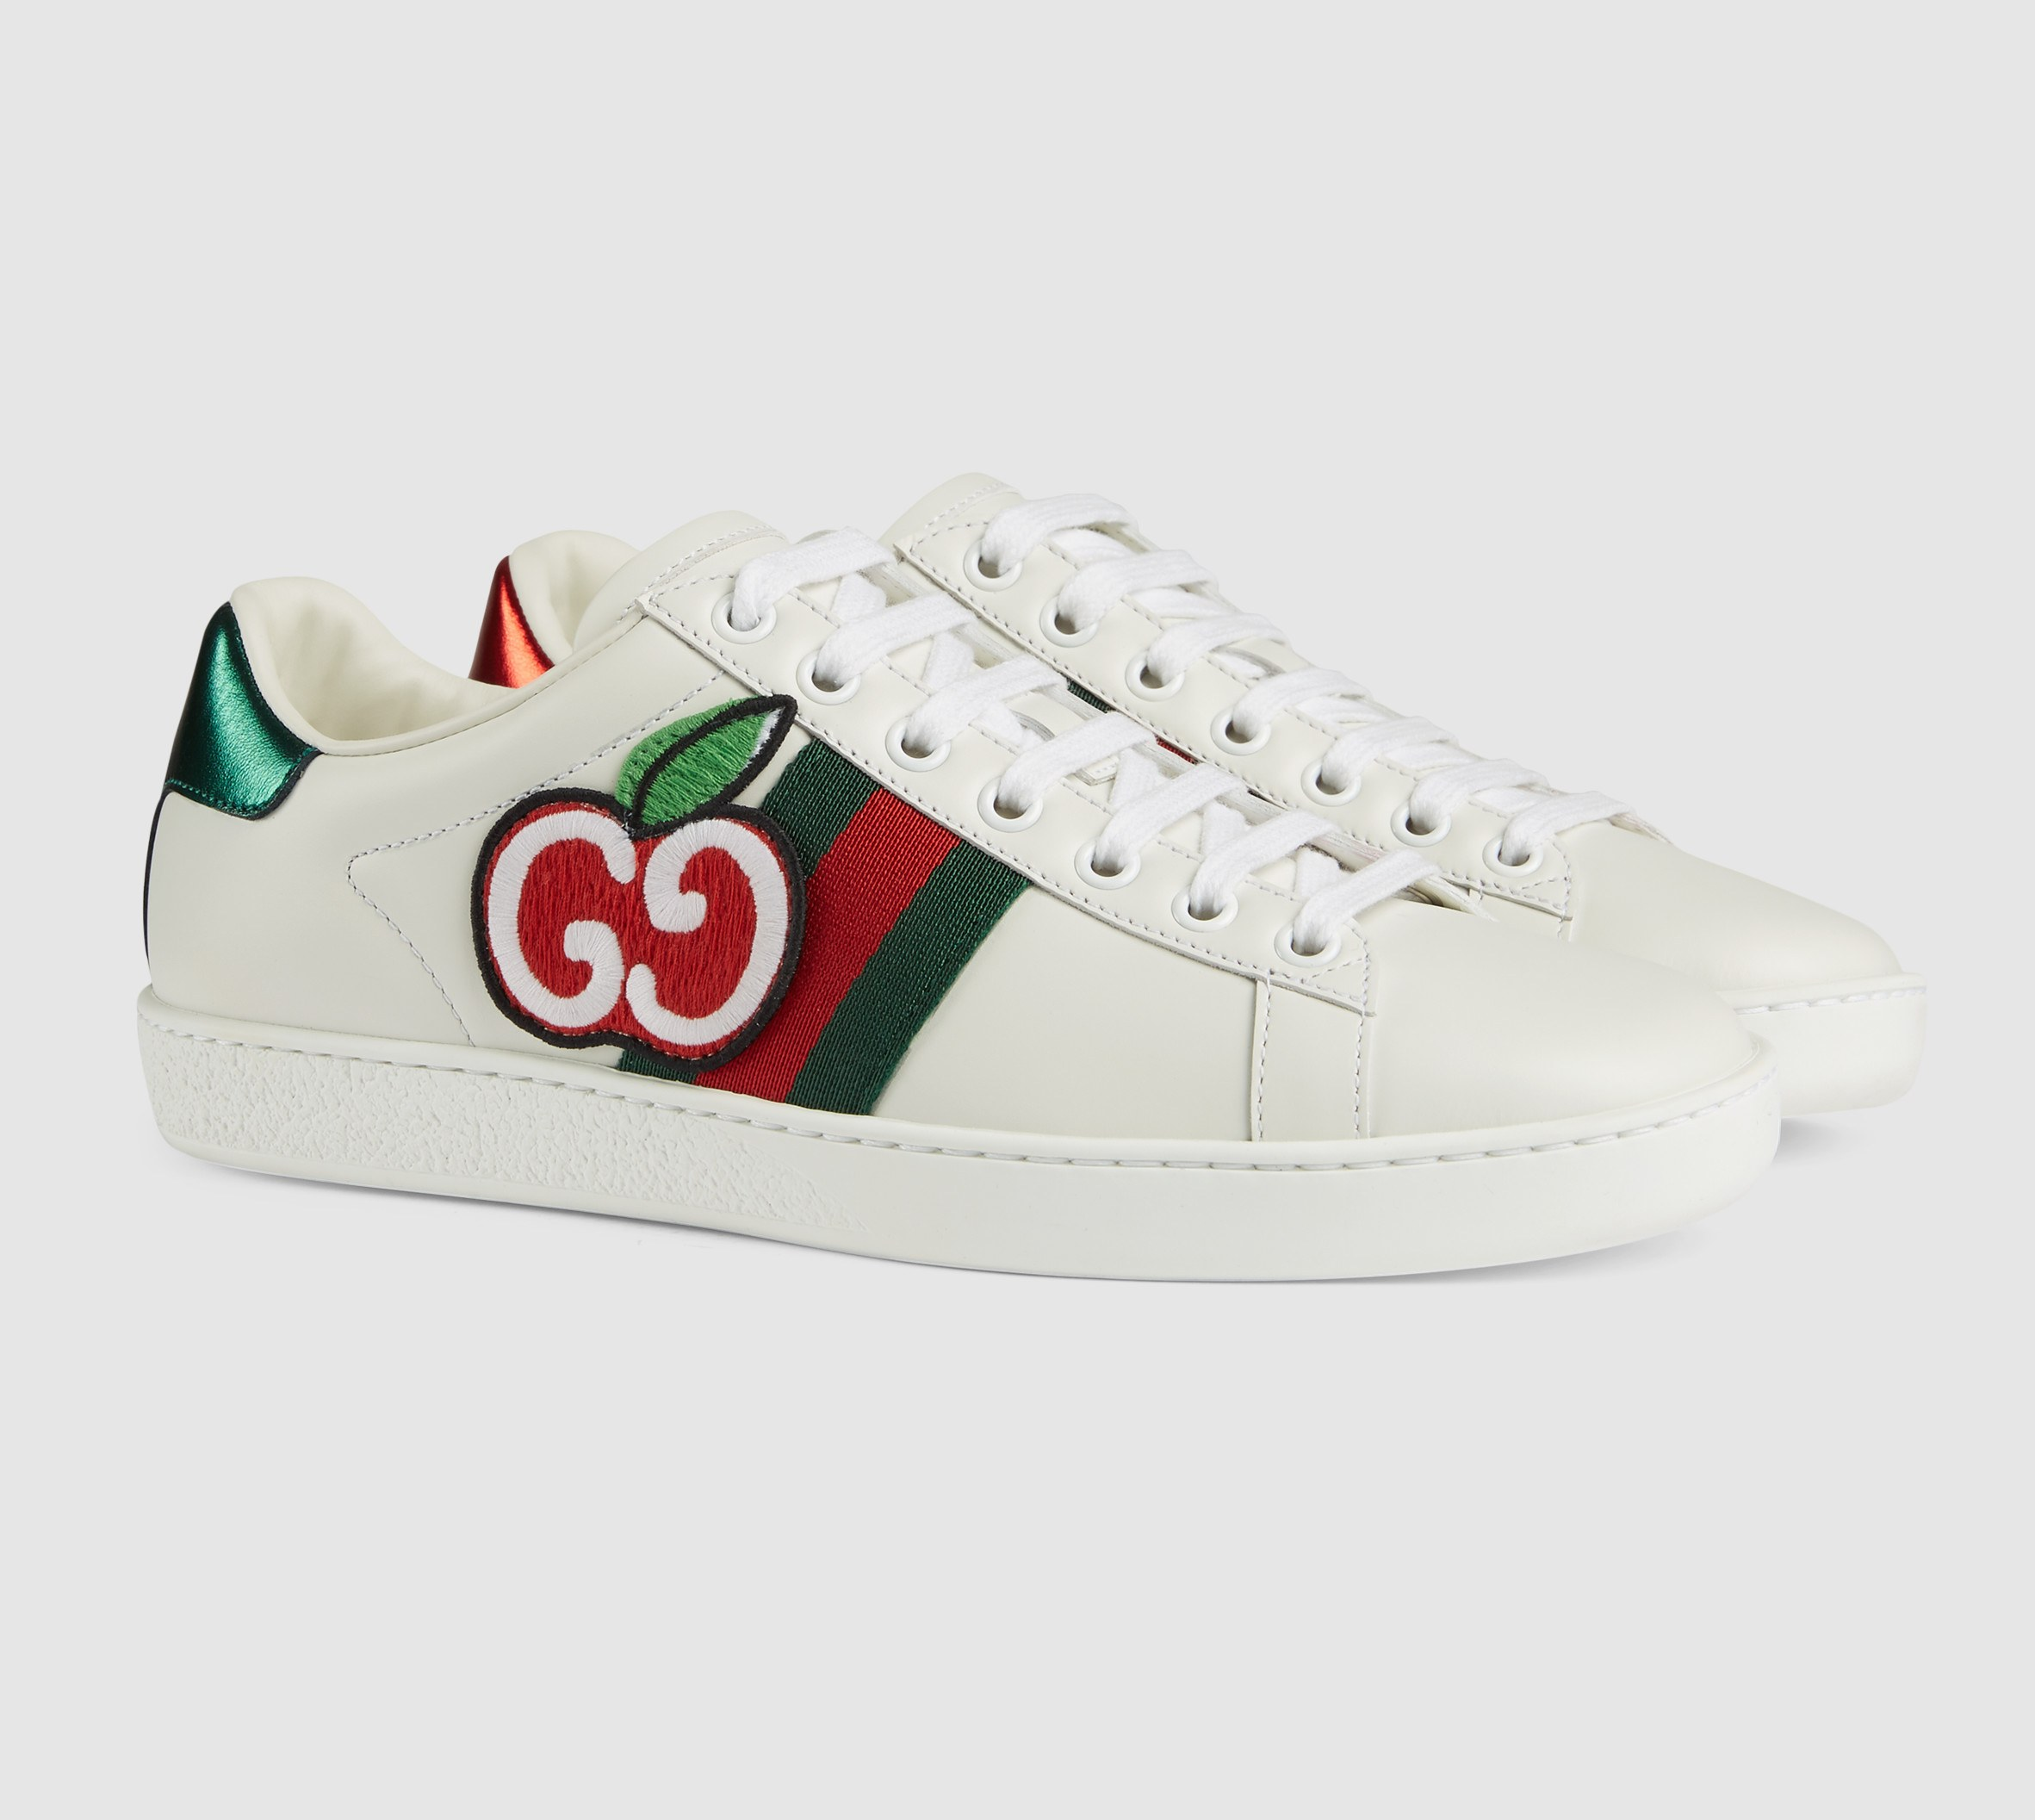 Gucci Ace Sneaker with GG Apple 611377 White